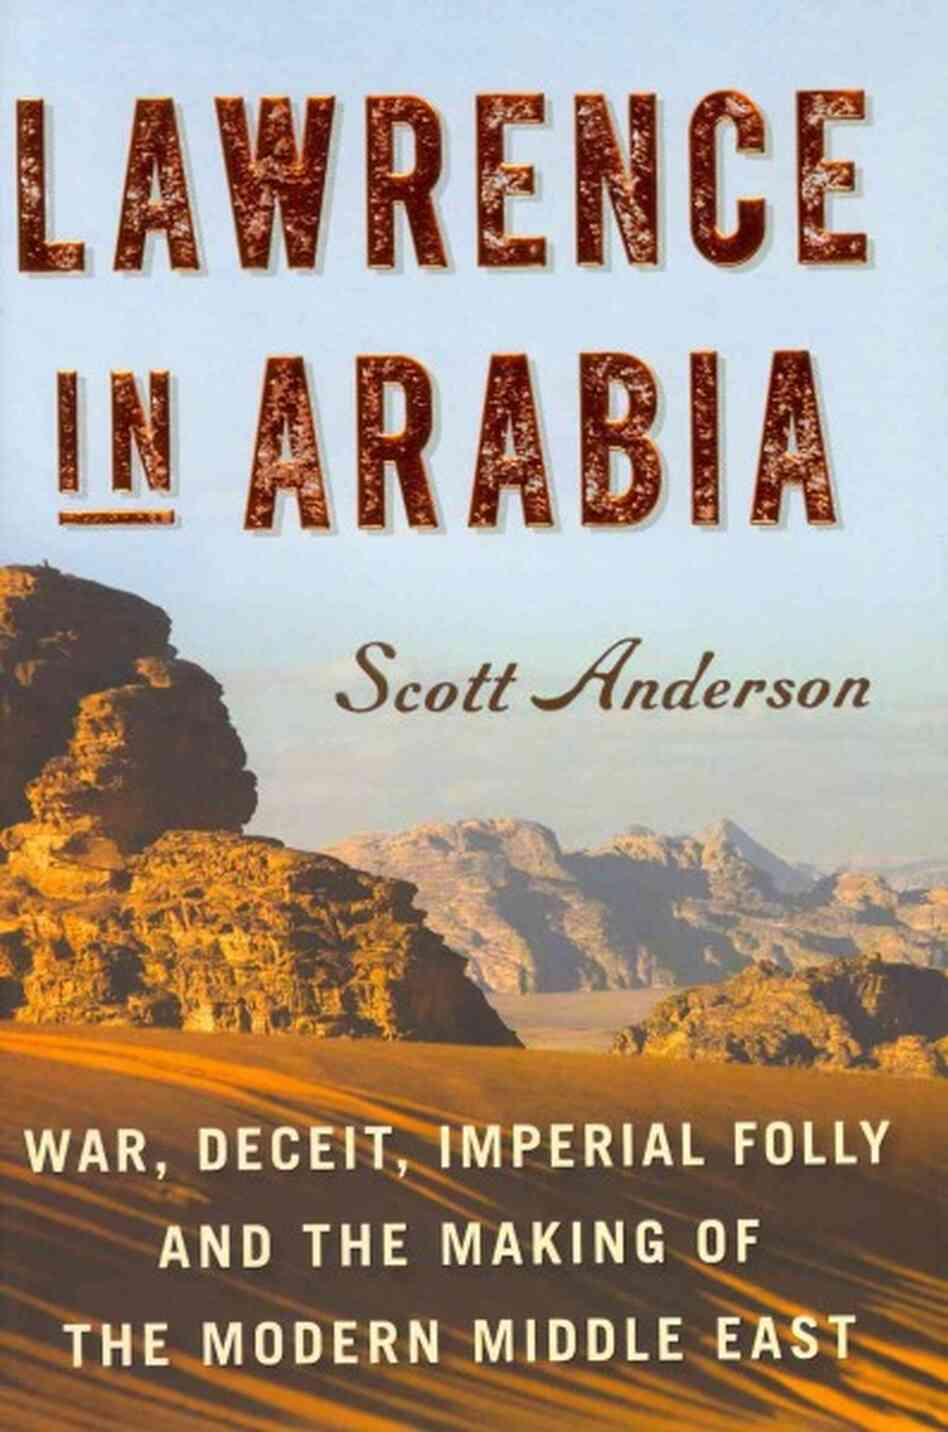 book review lawrence in arabia book of words book review lawrence in arabia